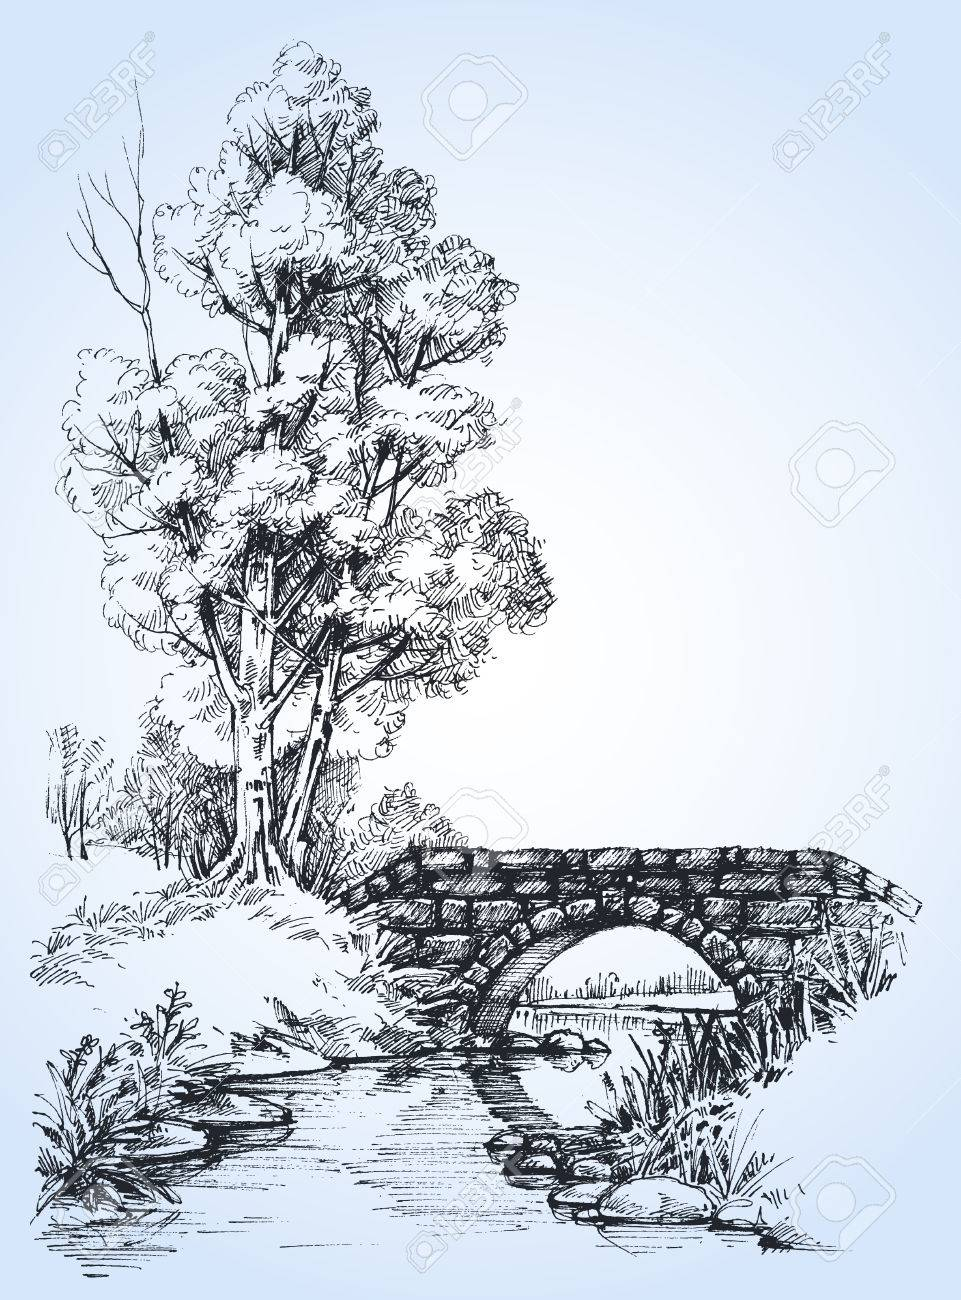 Park sketch, a stone bridge over river in the forest - 55852471